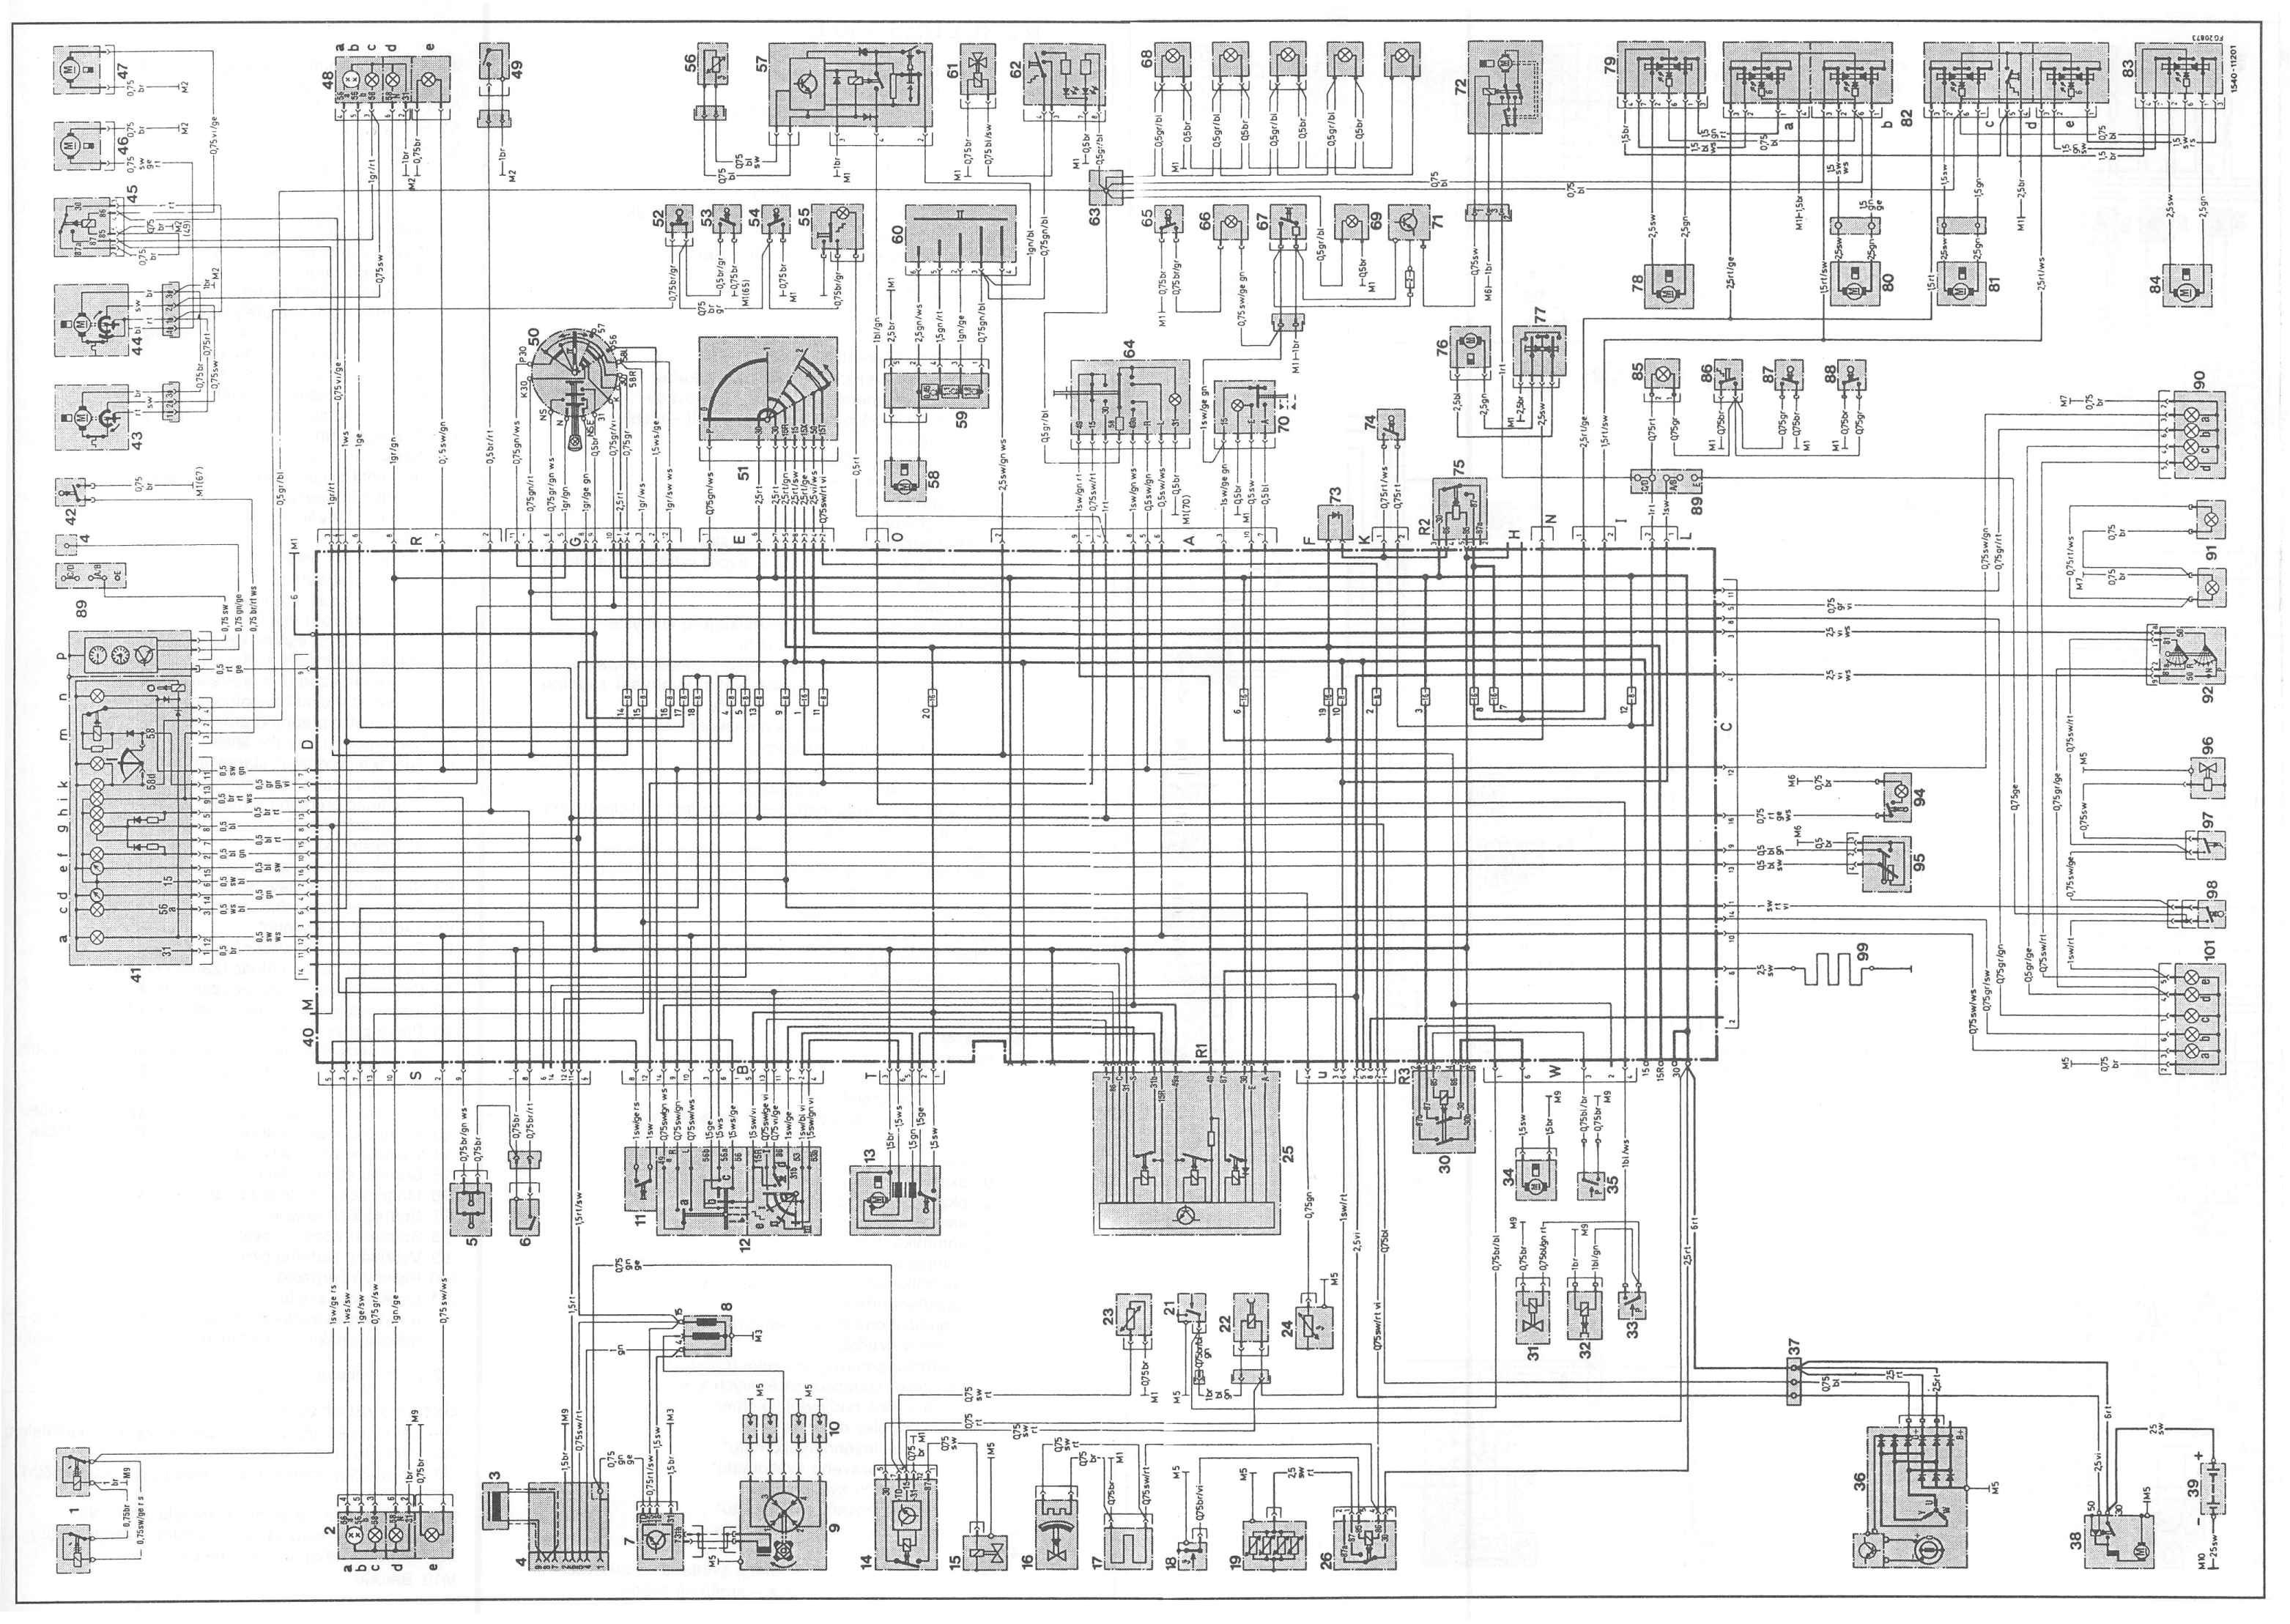 ... 2008 mercedes c300 fuse box diagram imageresizertool com 2008 Mercedes  C300 AMG